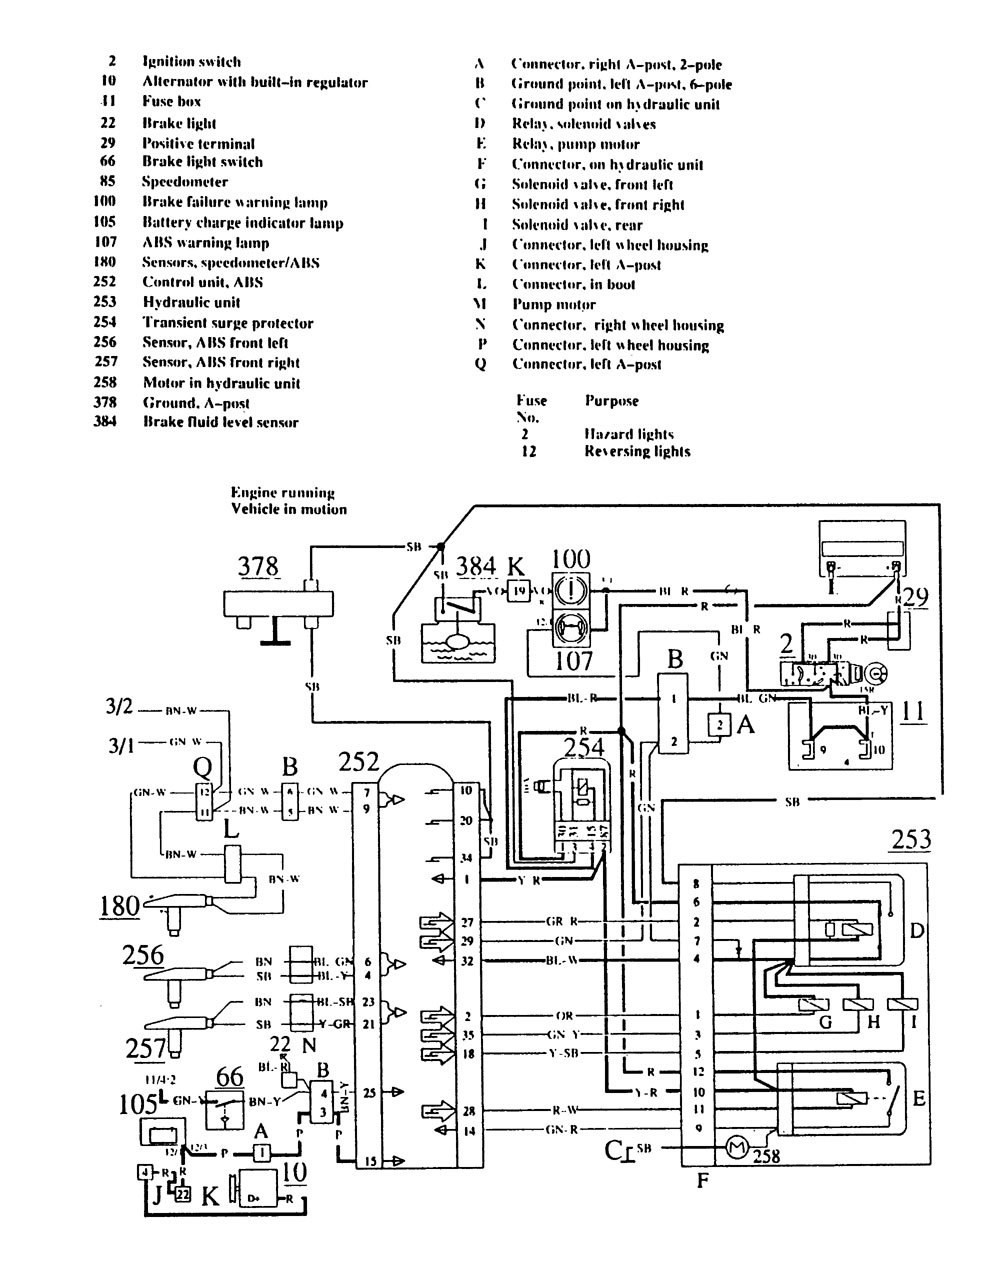 Charming Volvo 740 Stereo Wiring Diagram Pictures Inspiration - Wiring Diagram